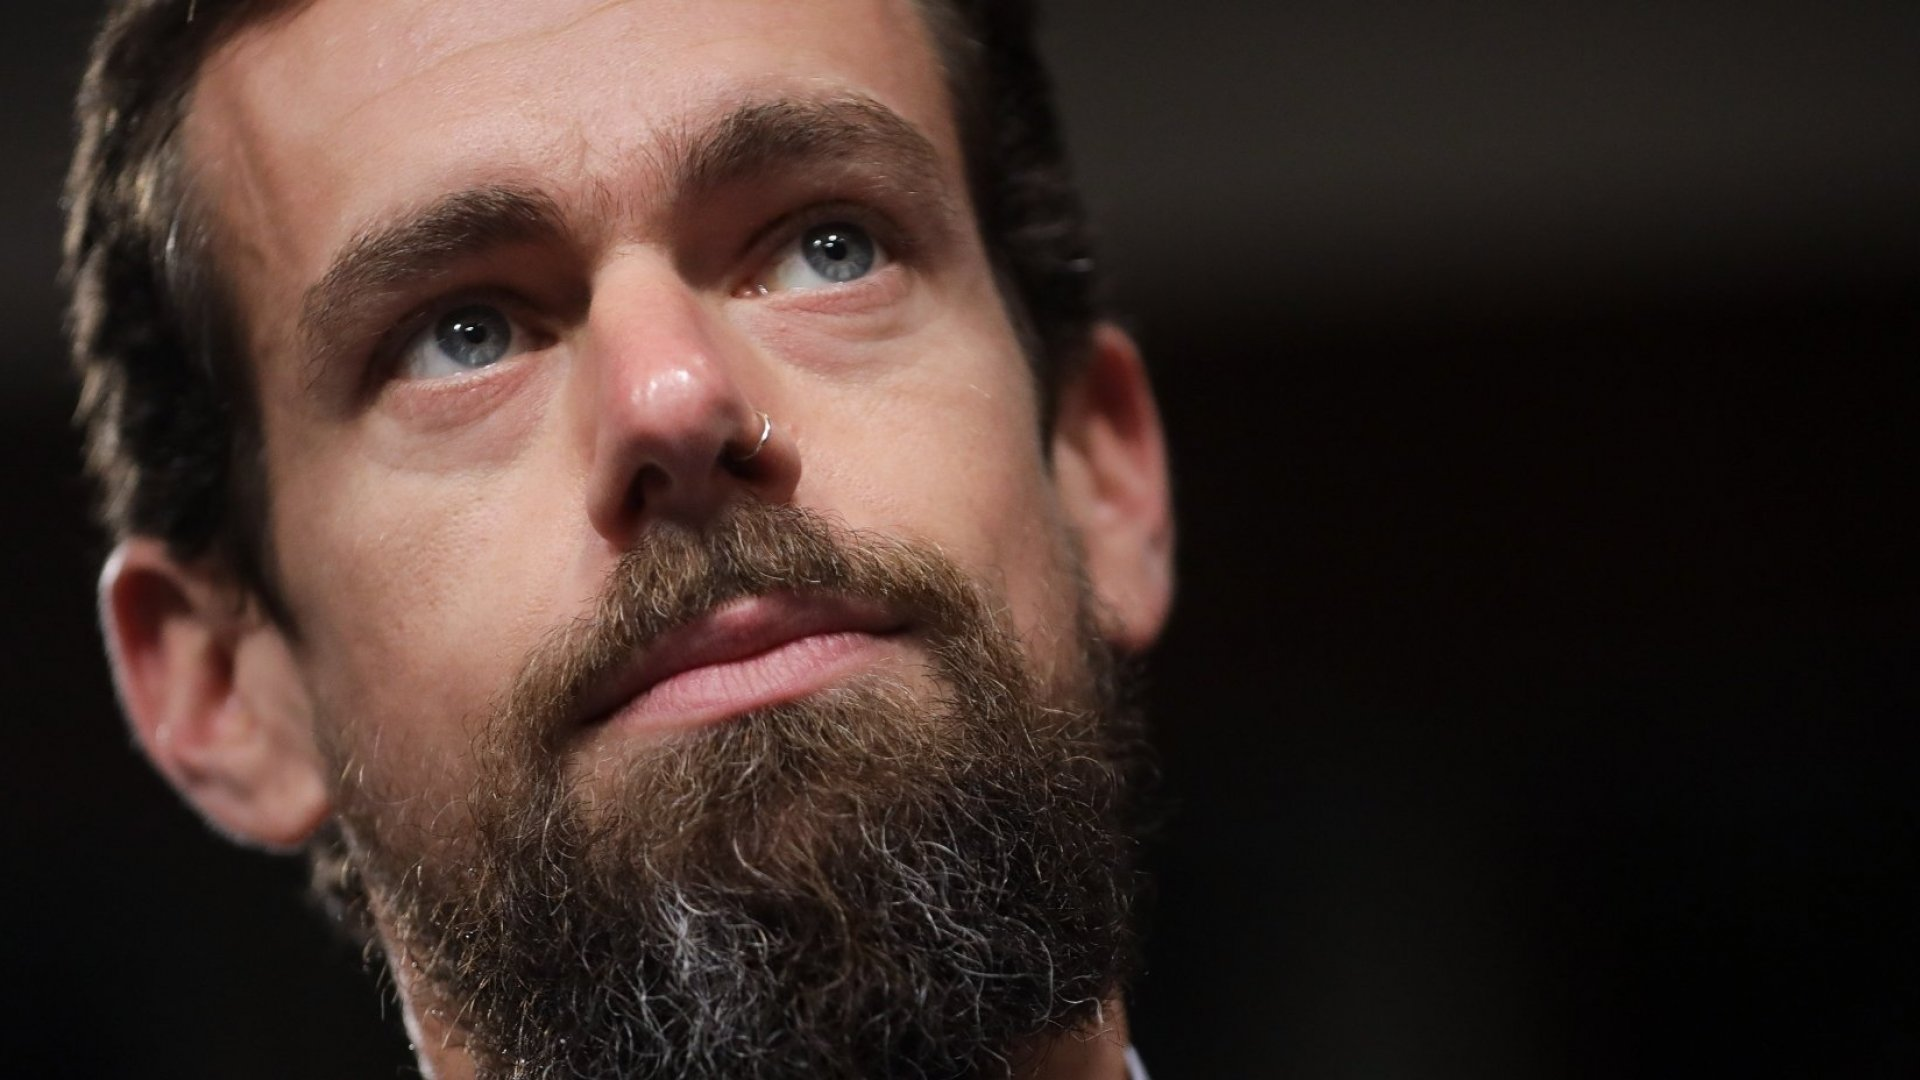 While Twitter CEO Jack Dorsey Eats Only 1 Meal a Day (and Even Just 5 Per Week), Here's What You Really Should Know About How Intermittent Fasting Works